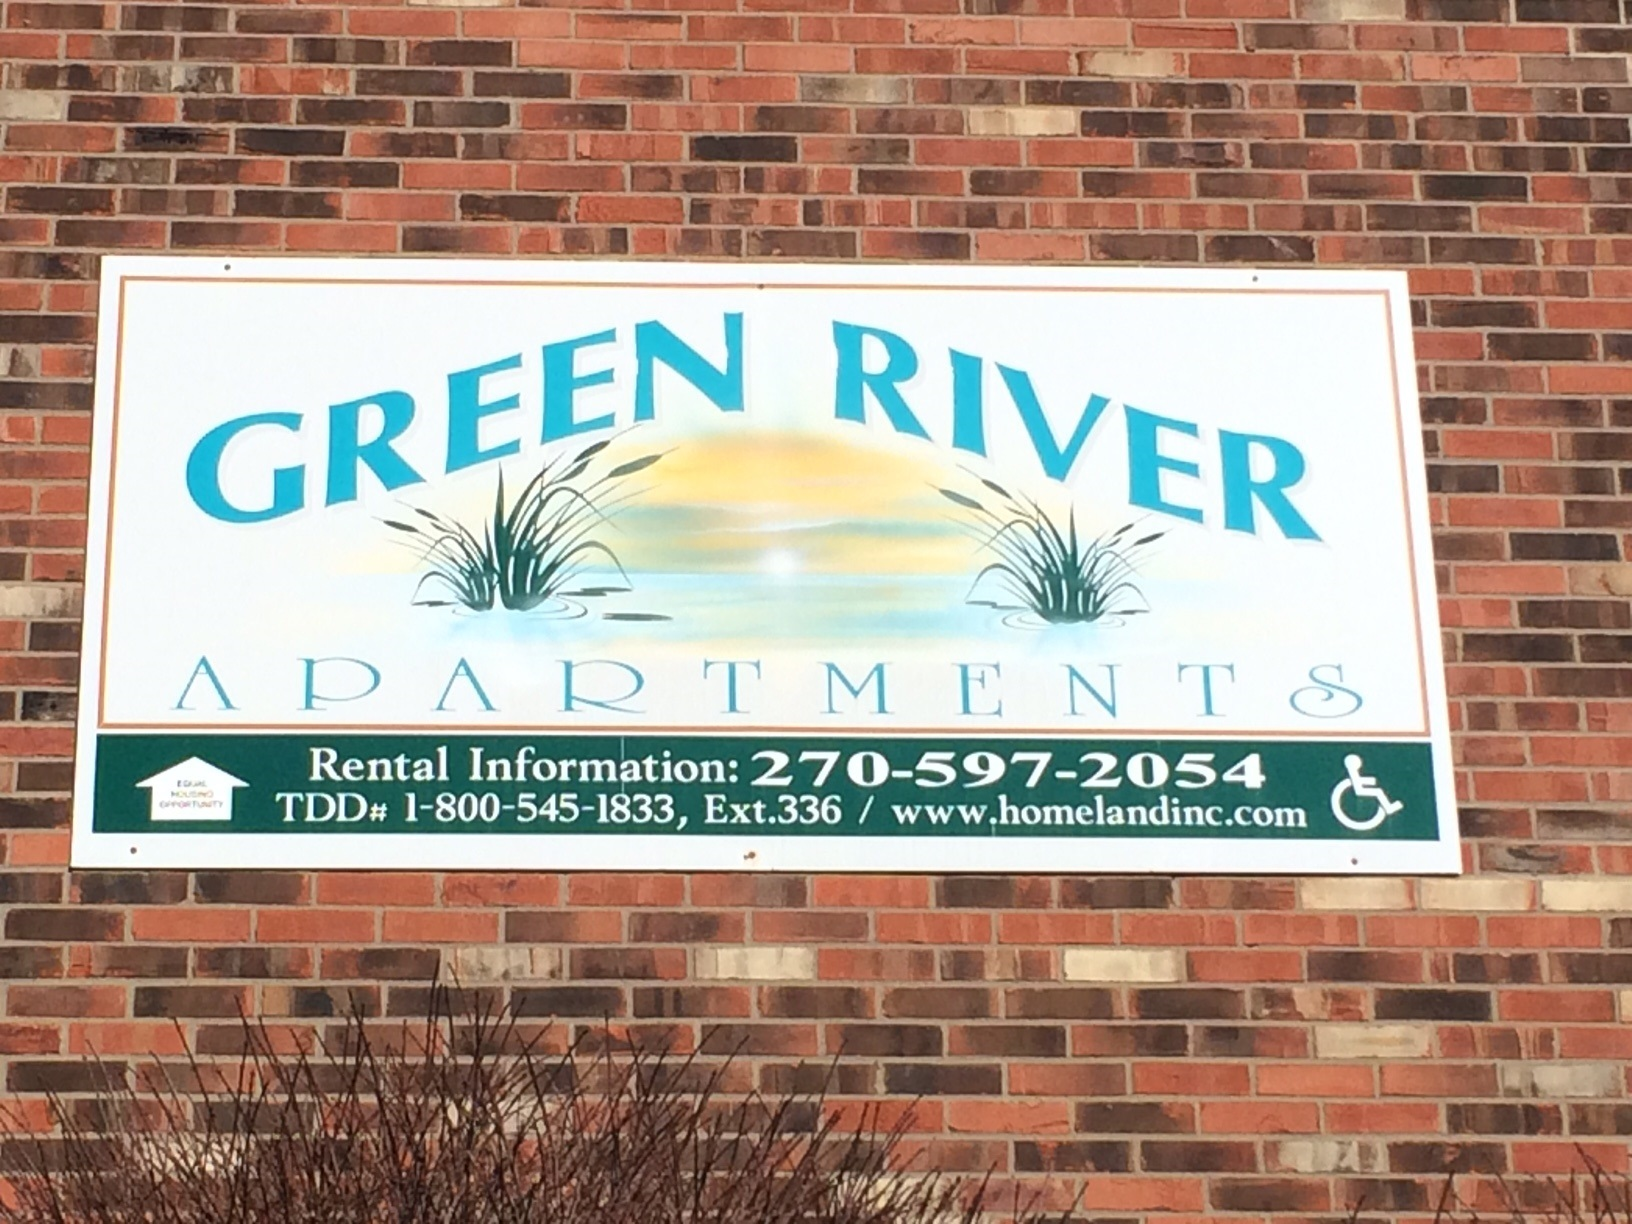 Green River Apartments